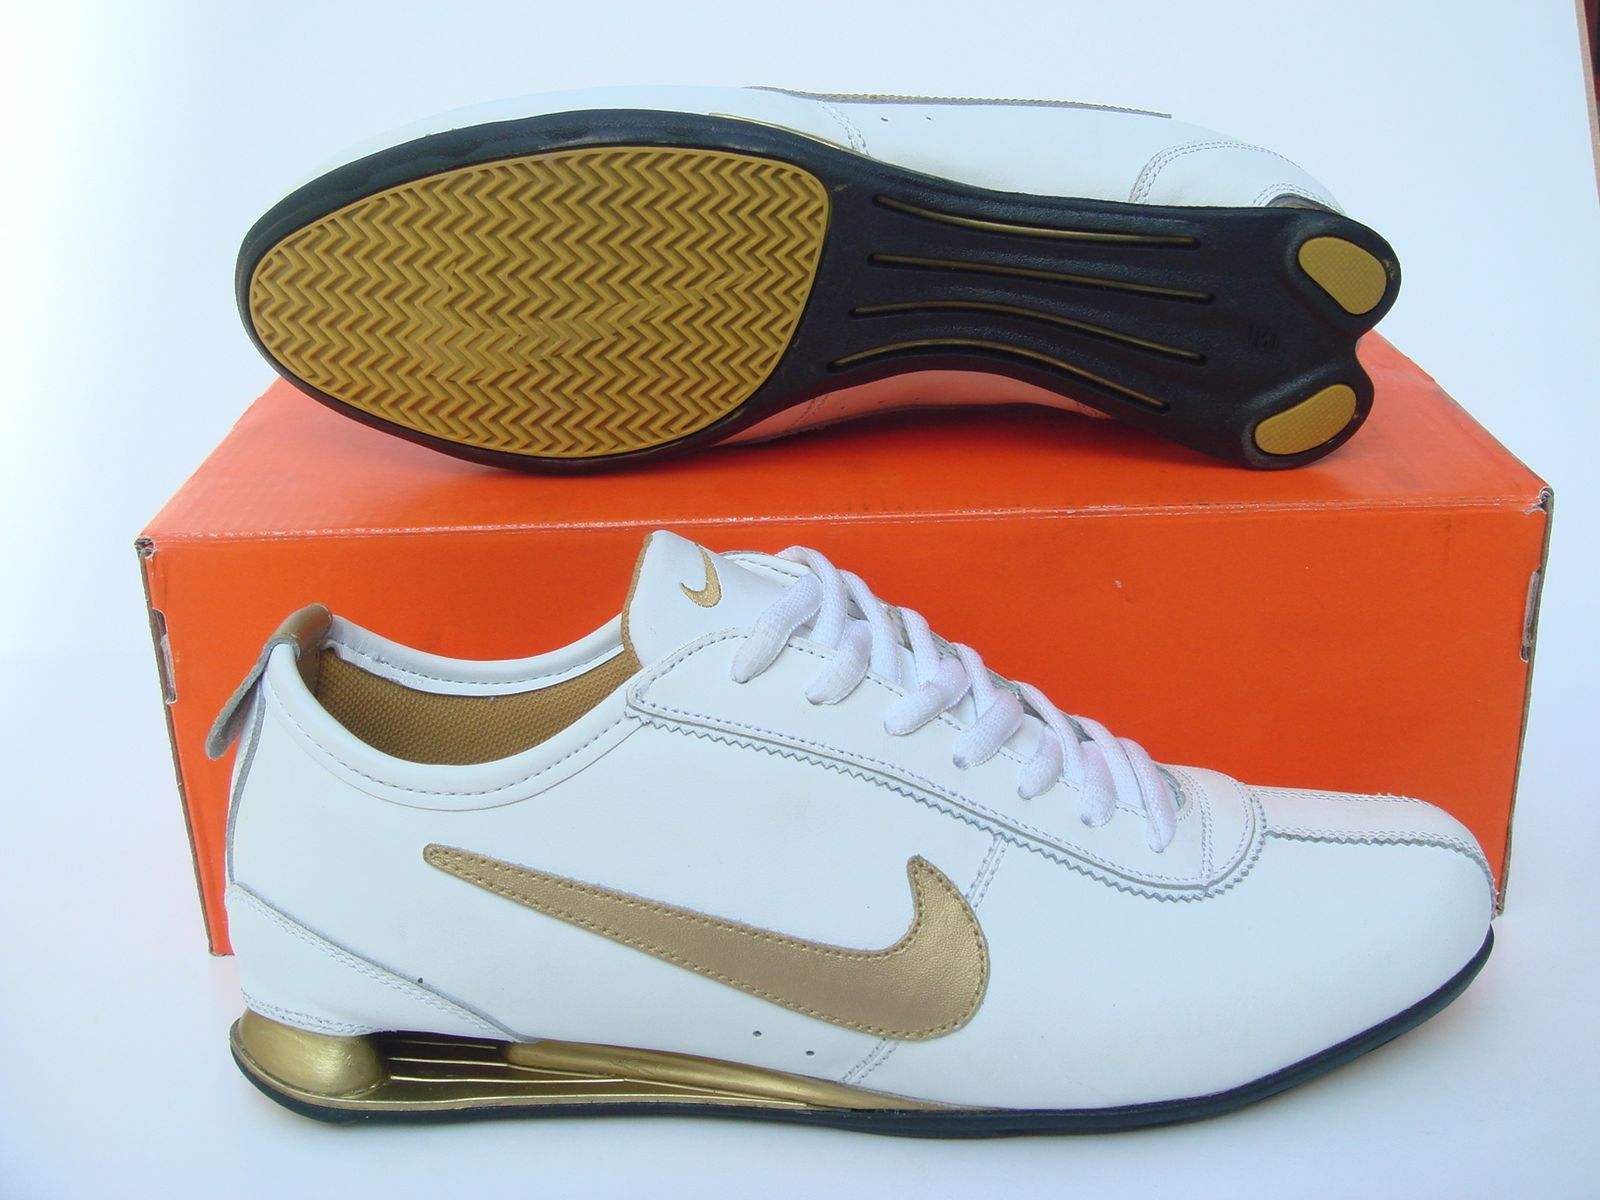 Tomar conciencia Mexico Preescolar  Men's Nike Shox R2 shoes leather sneakers ,Nike R2 shoes,Men's Sneakers